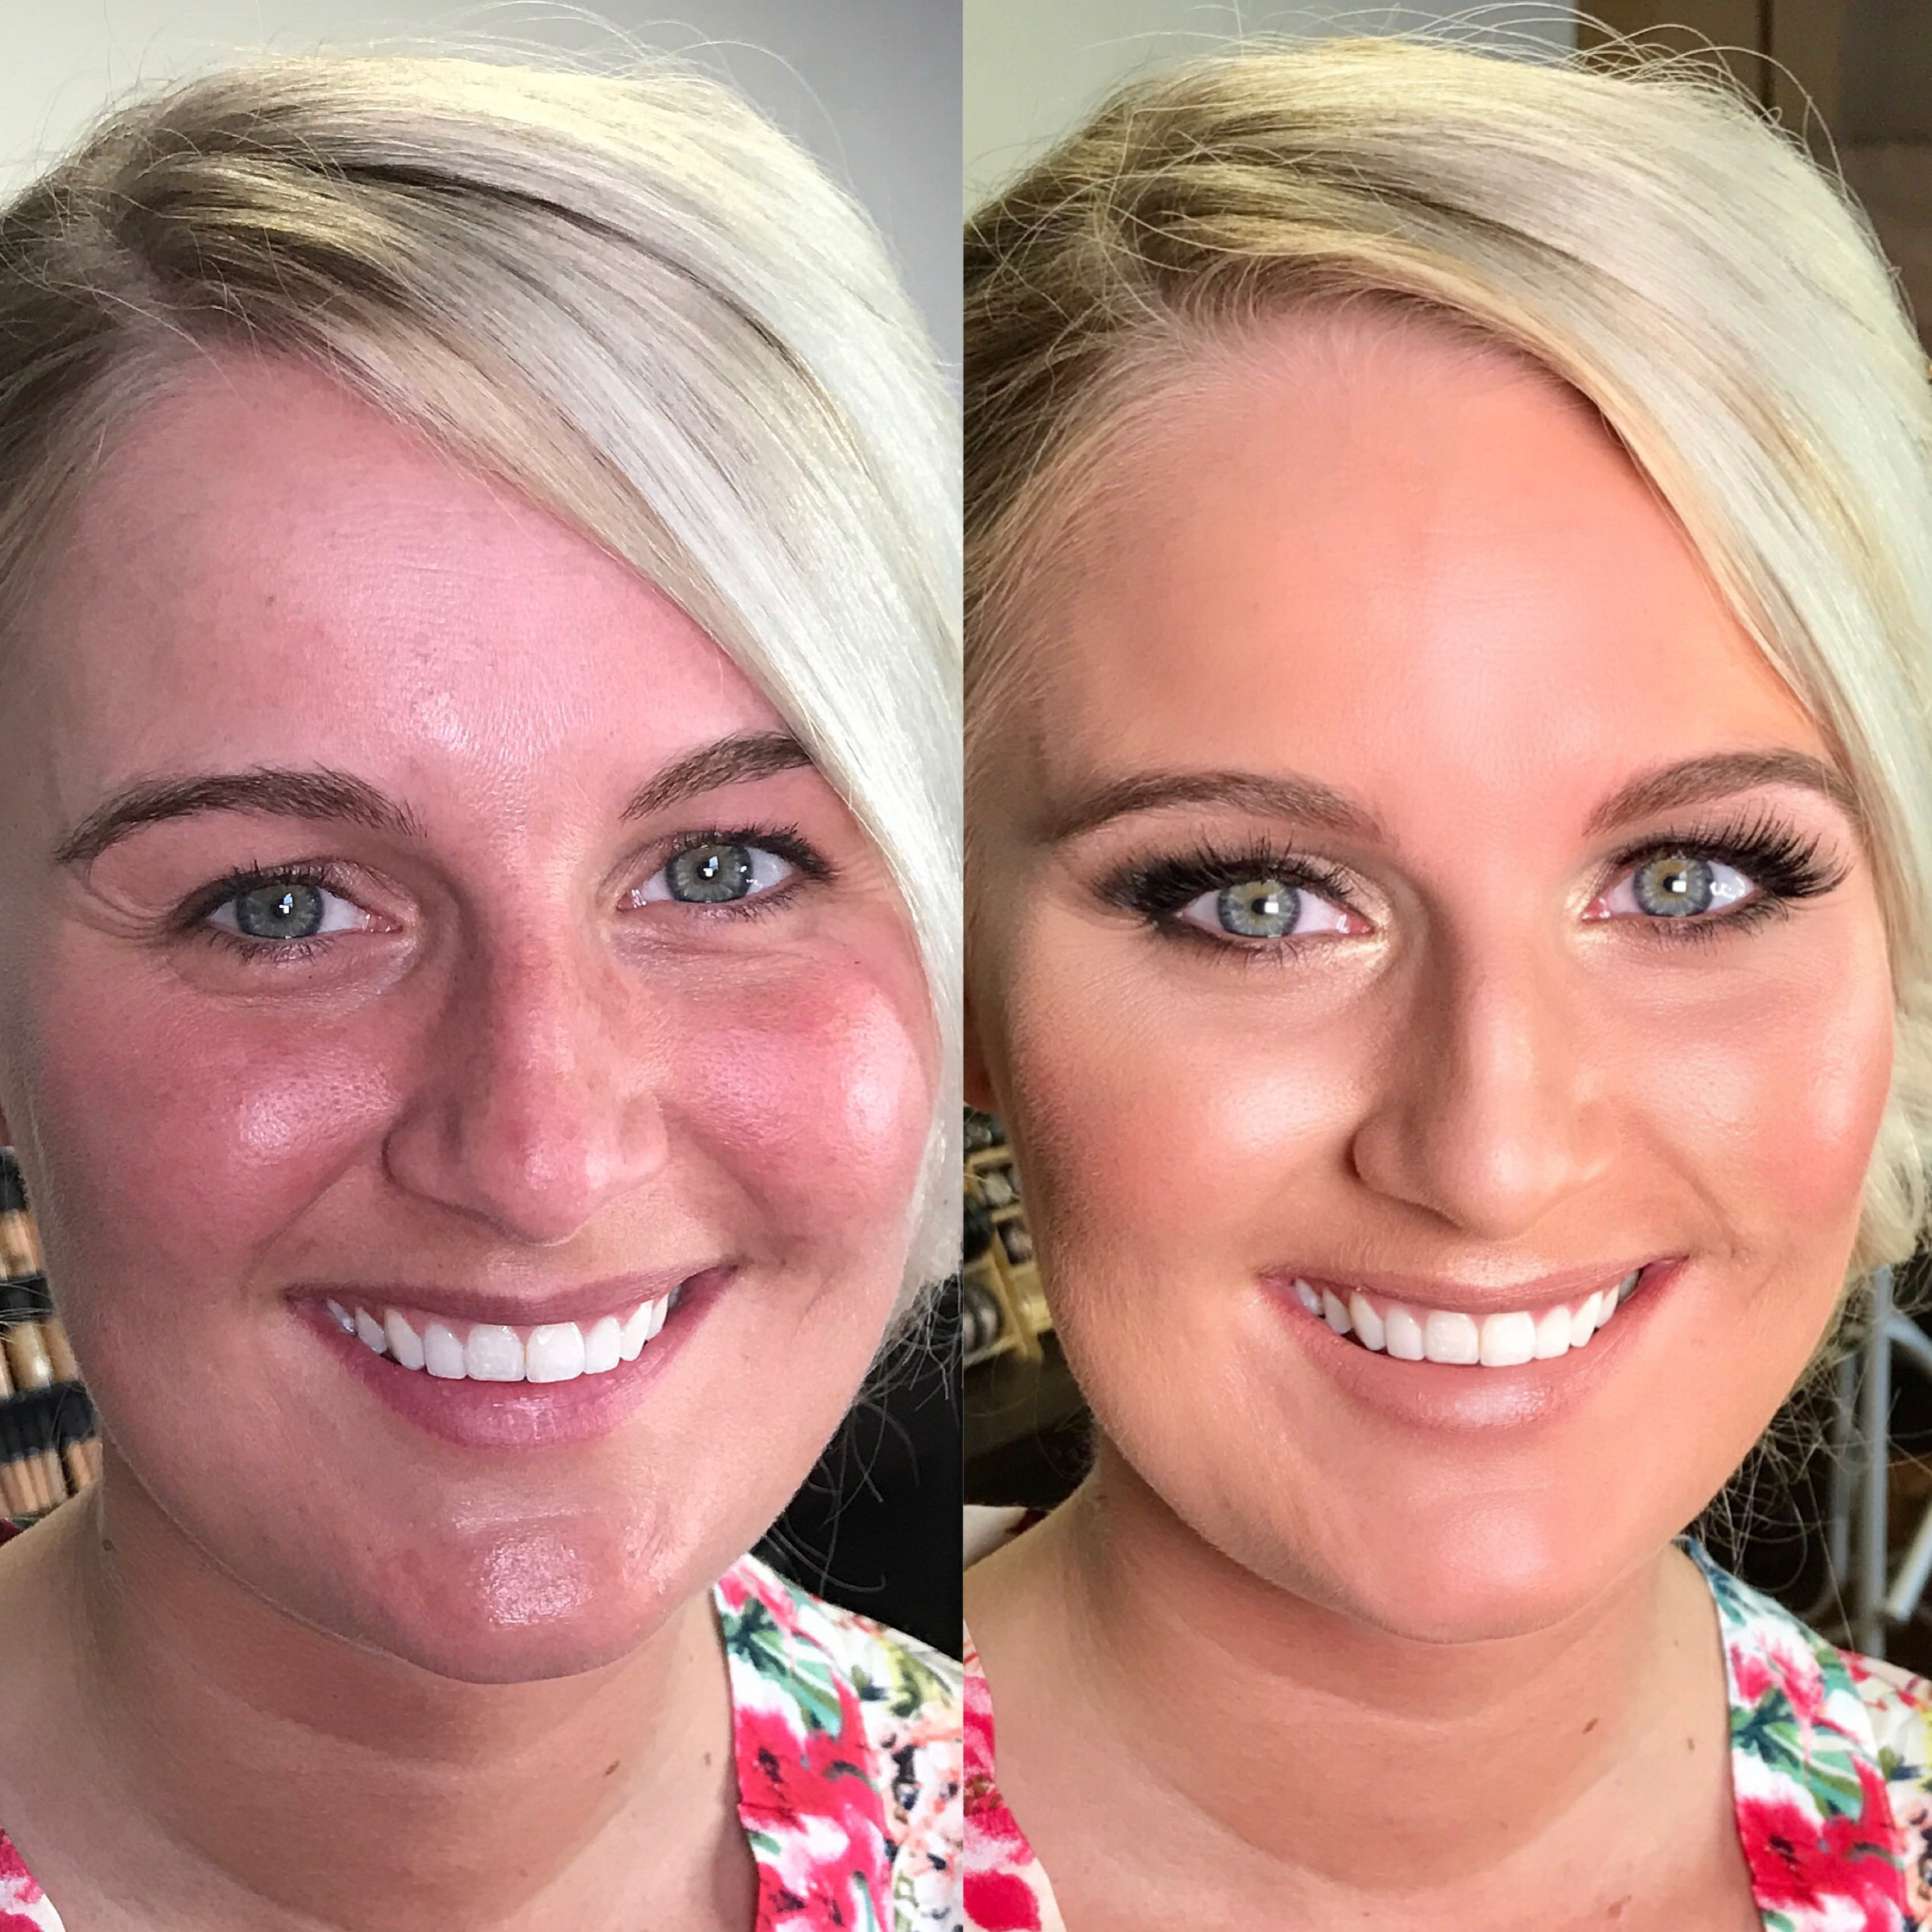 This bride wanted full-on glam for her makeup look, so we layered different cream products under the airbrush formula to give a dense look that really pops on camera.